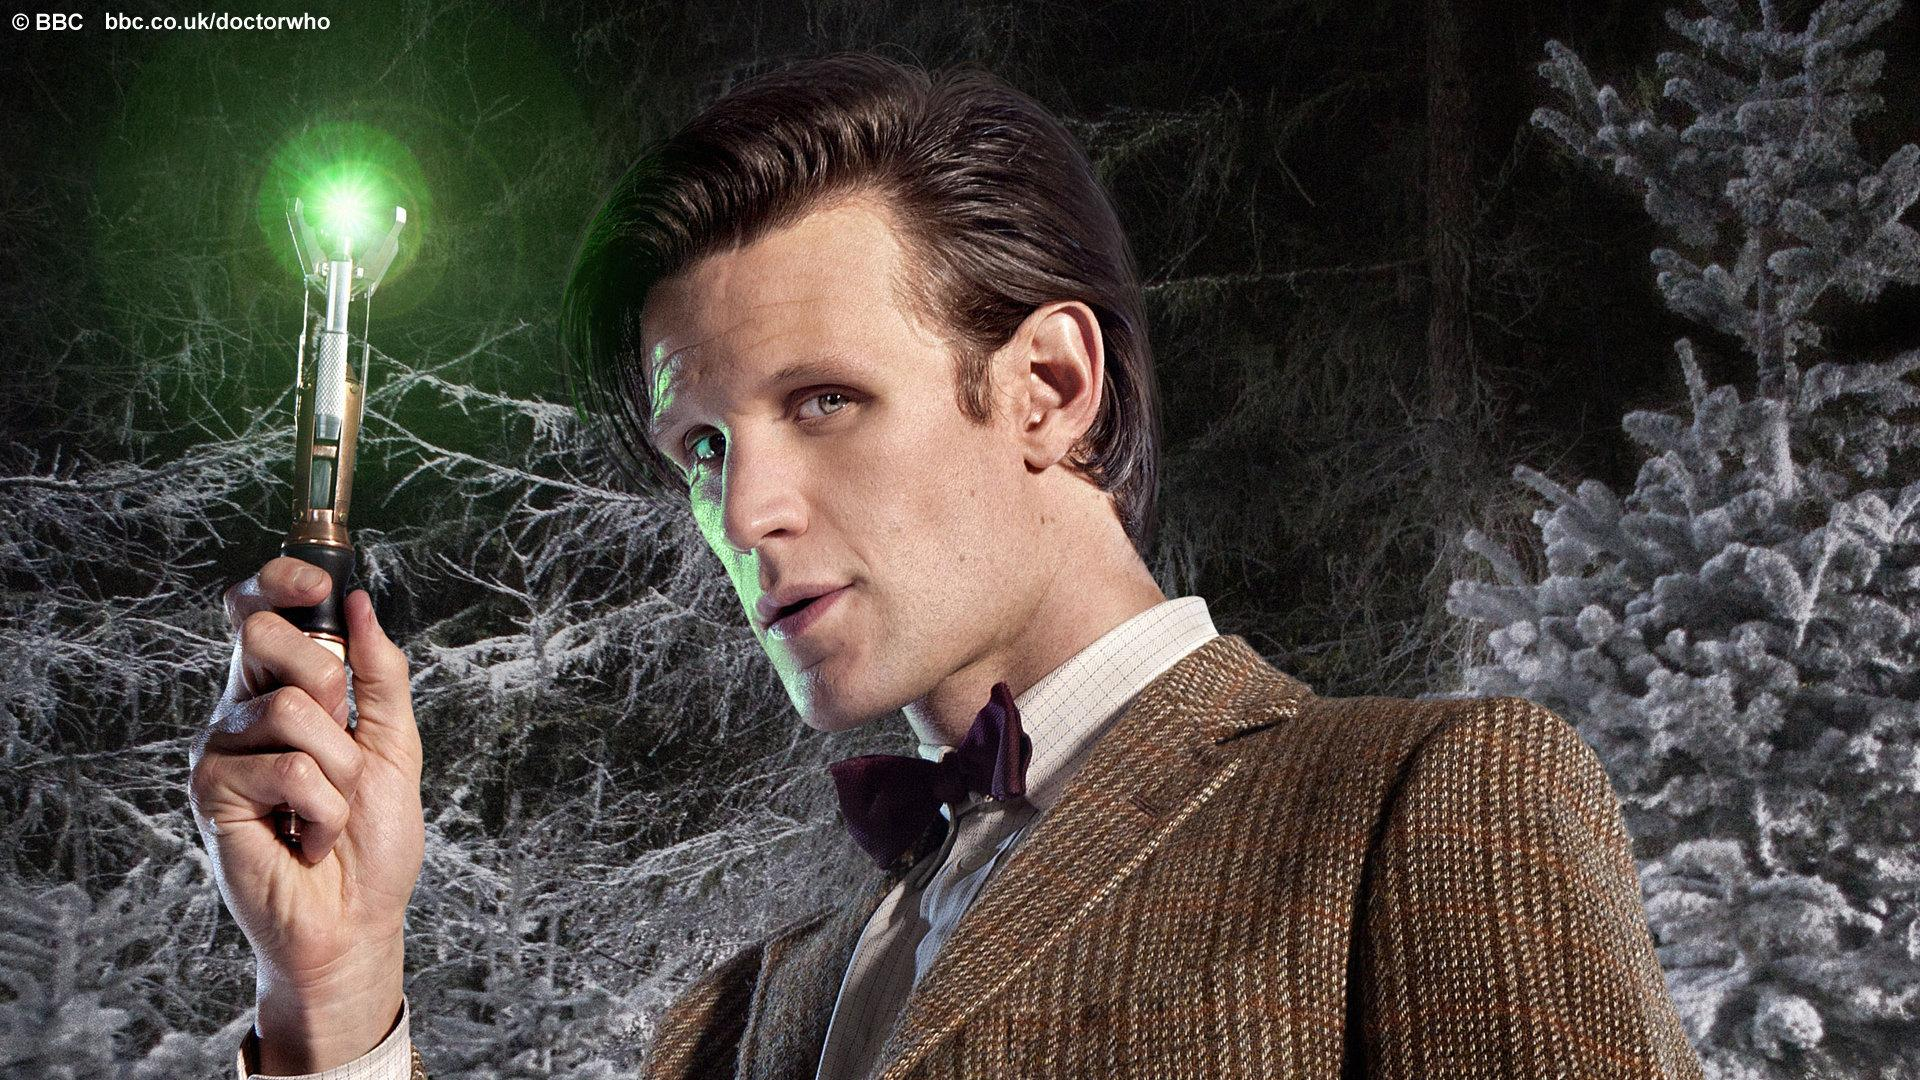 Matt Smith Dw Blogtor Who